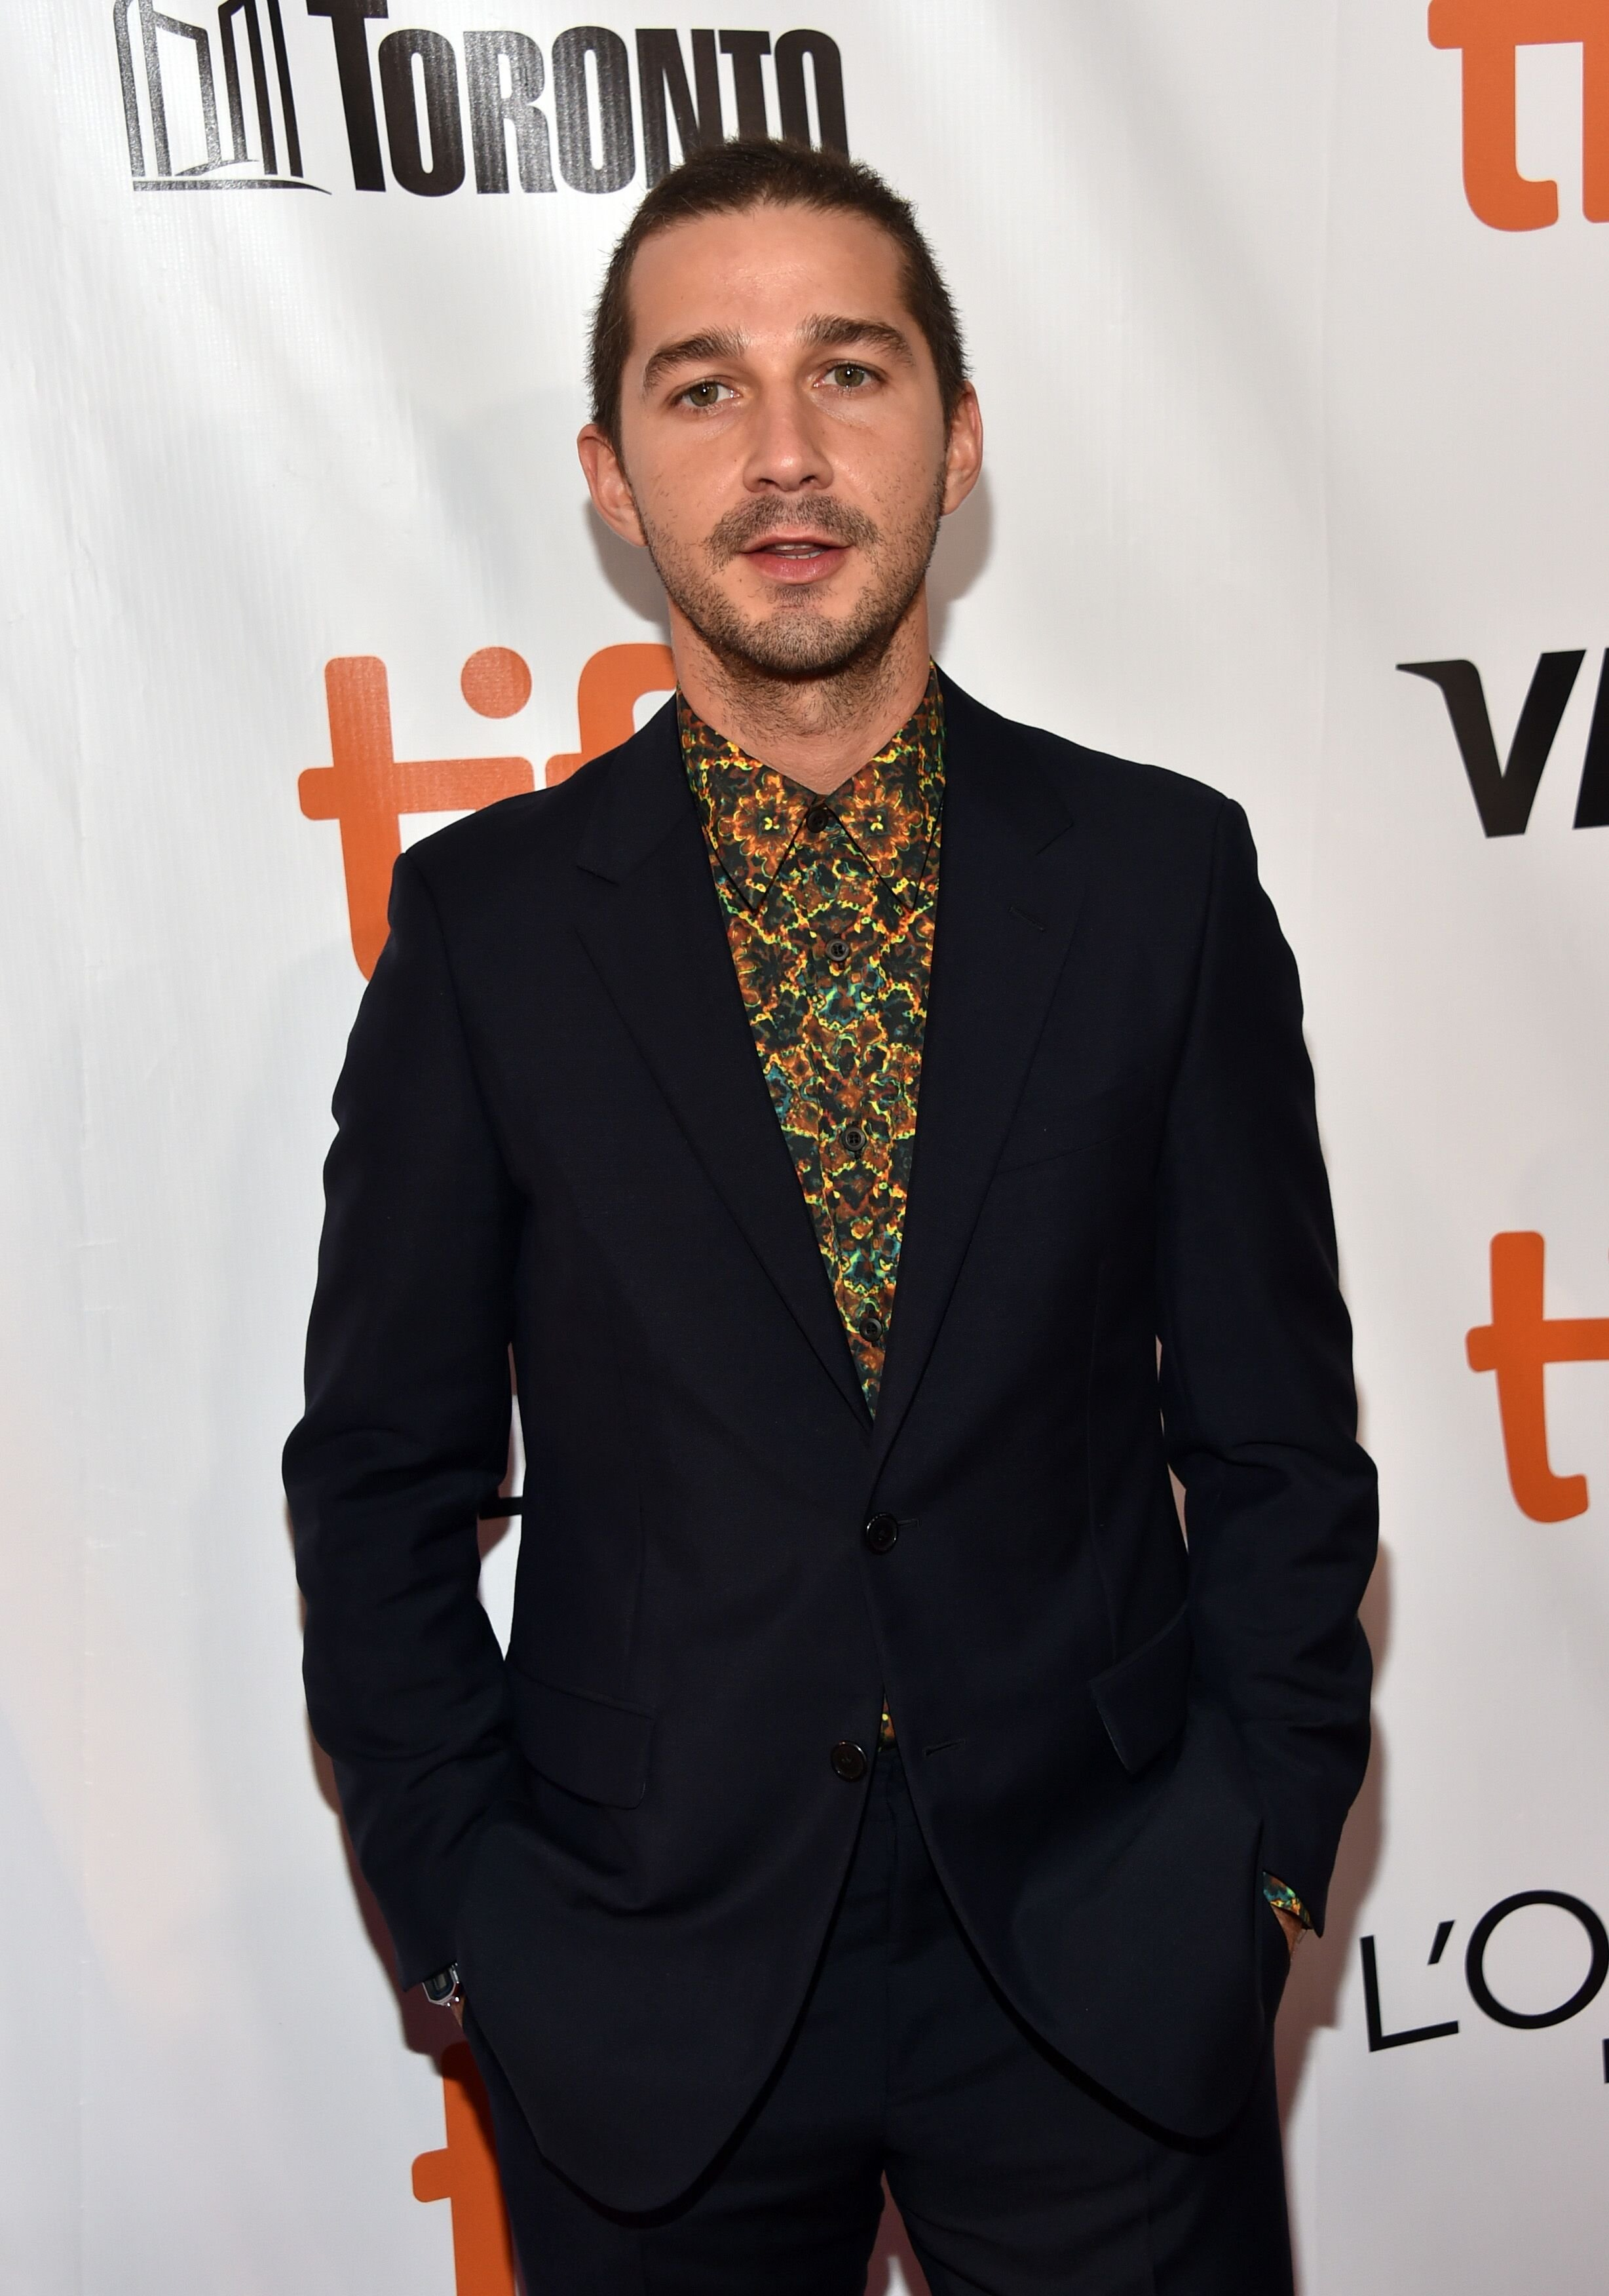 Shia LaBeouf attends the 'Borg/McEnroe' premiere. | Source: Getty Images